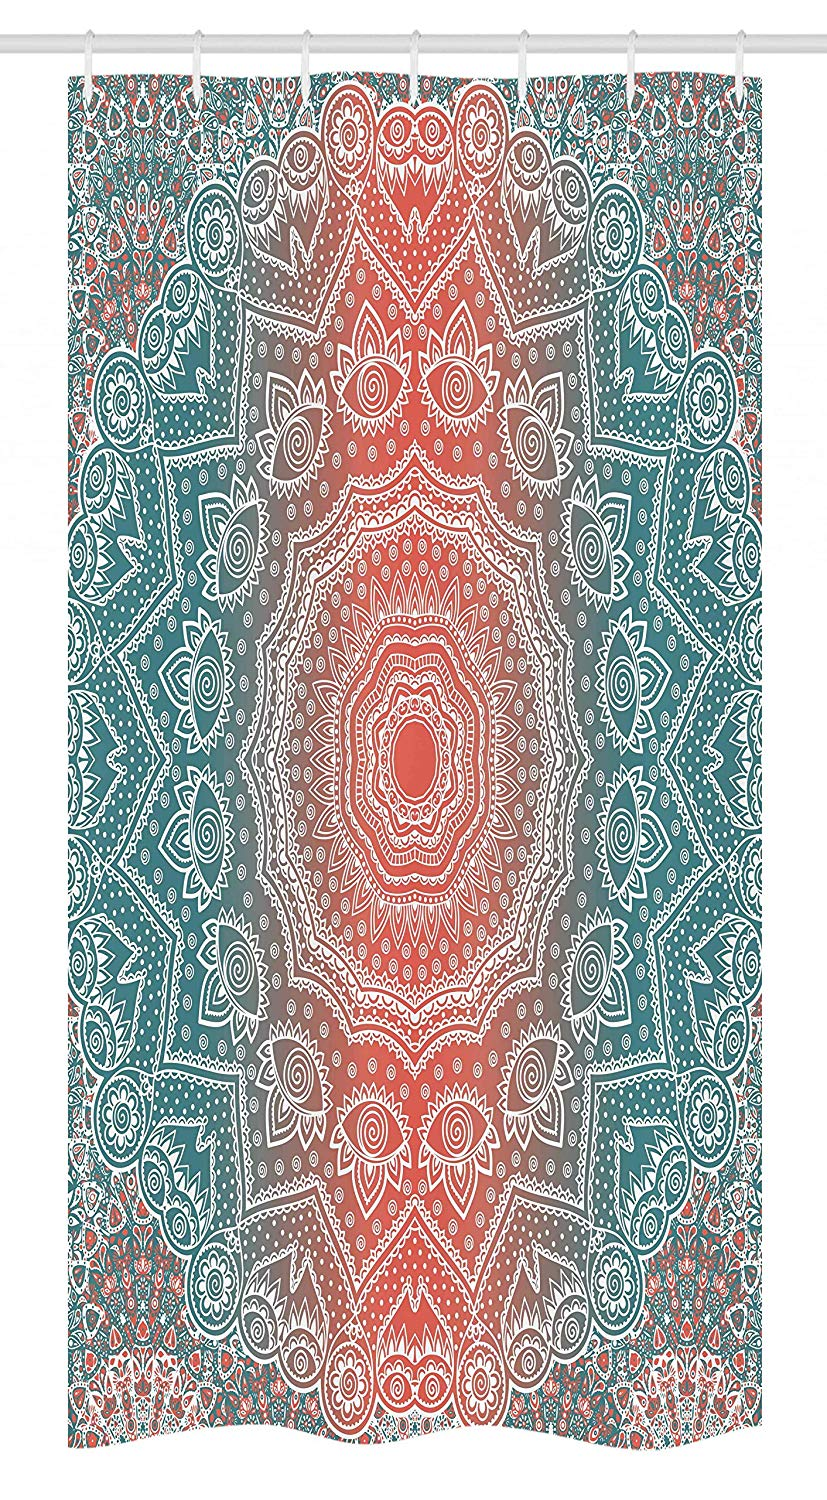 "Ambesonne Coral and Teal Stall Shower Curtain, Modern Tribal Mandala Tibetan Healing Motif with Floral Geometric Ombre Art, Fabric Bathroom Decor Set with Hooks, 36"" X 72"", Coral Teal"